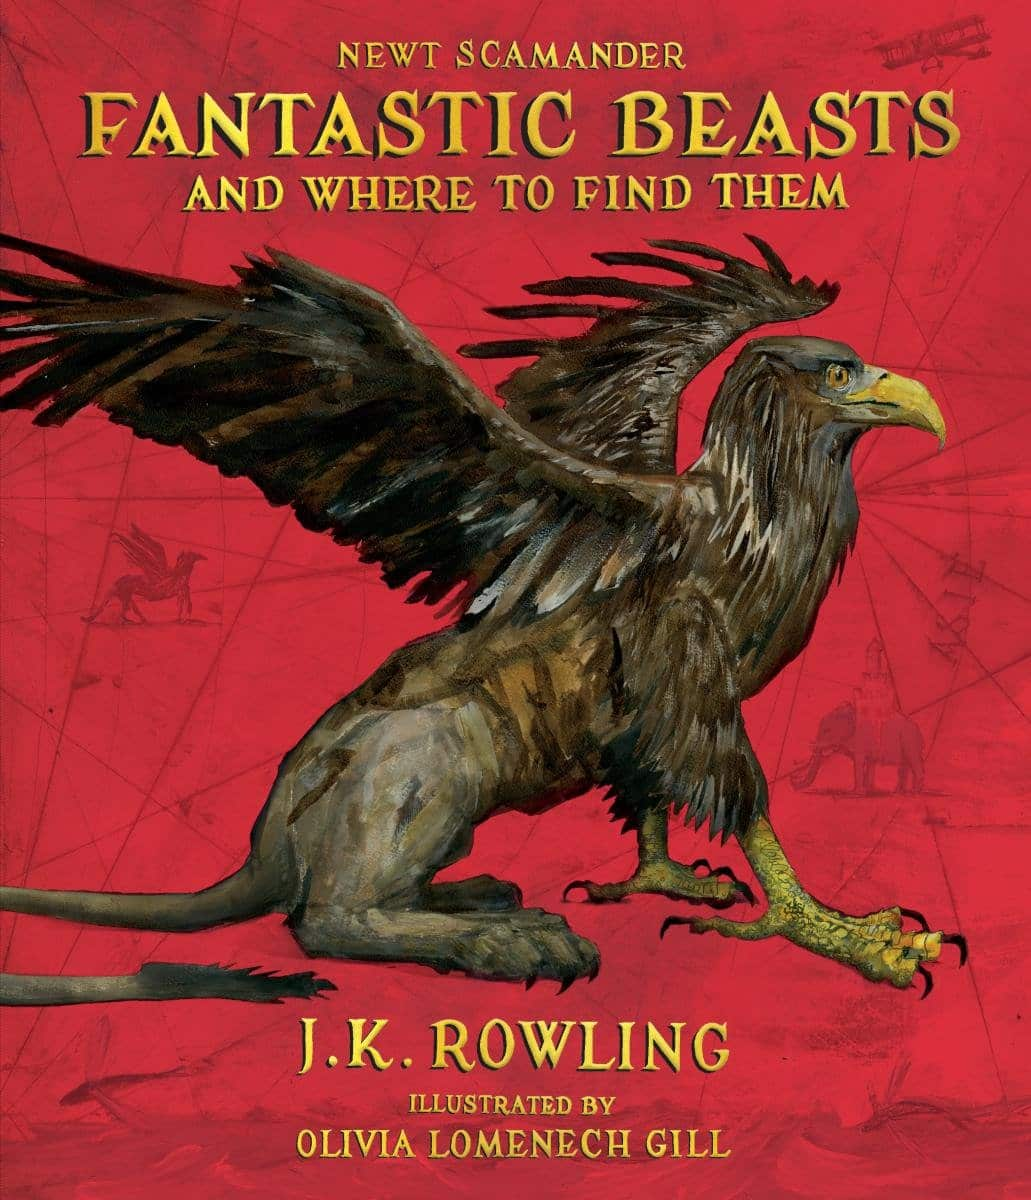 Fantastic Beasts and Where to Find Them Illustrated Edition $12.59 Amazon